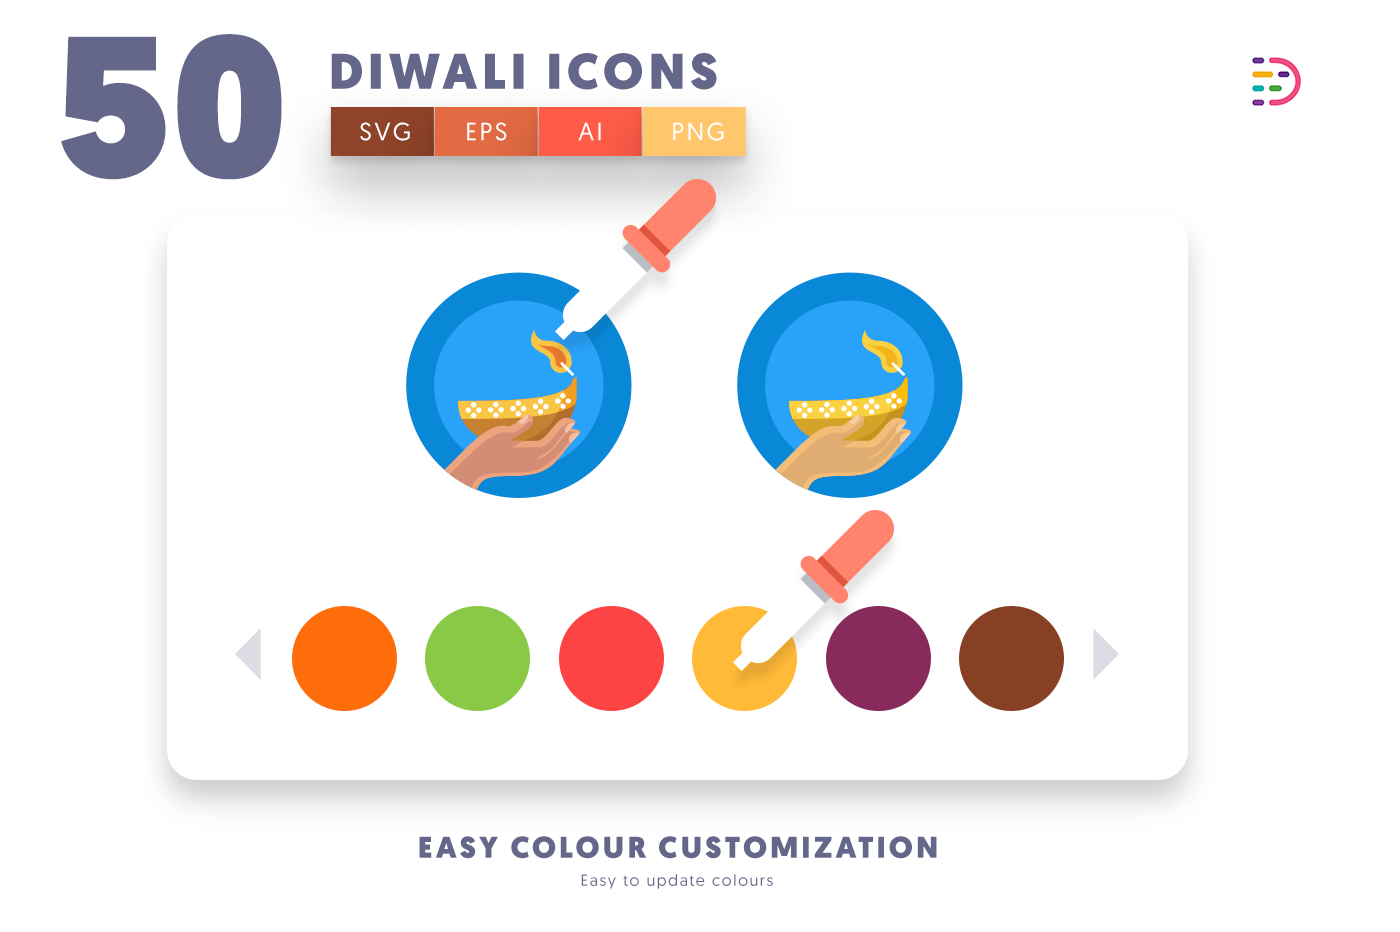 Customizable and vector 50 Diwali Icons